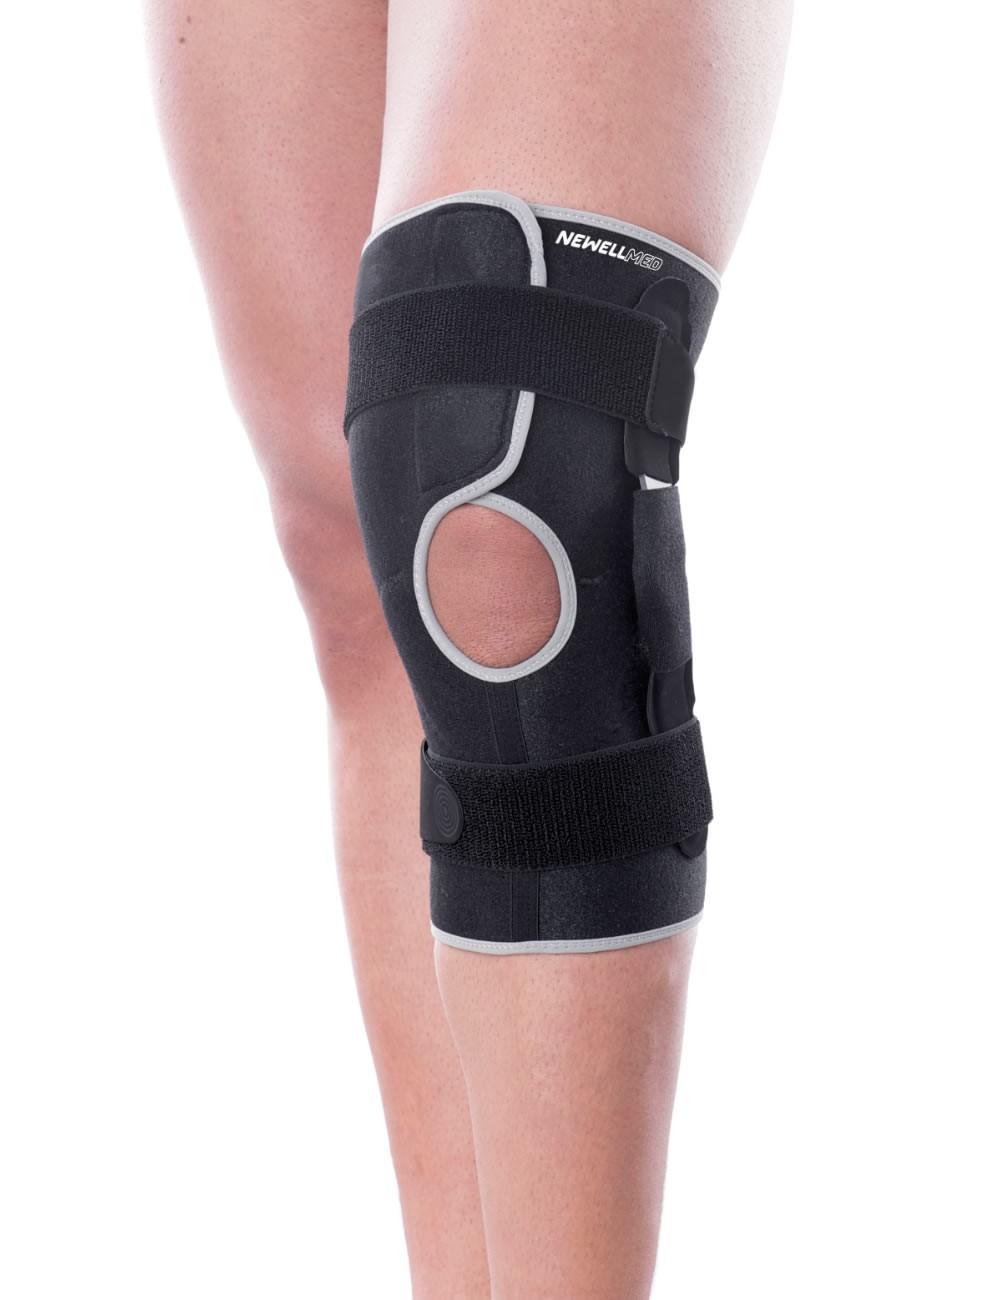 PK35 -Knee brace opened at the thigh